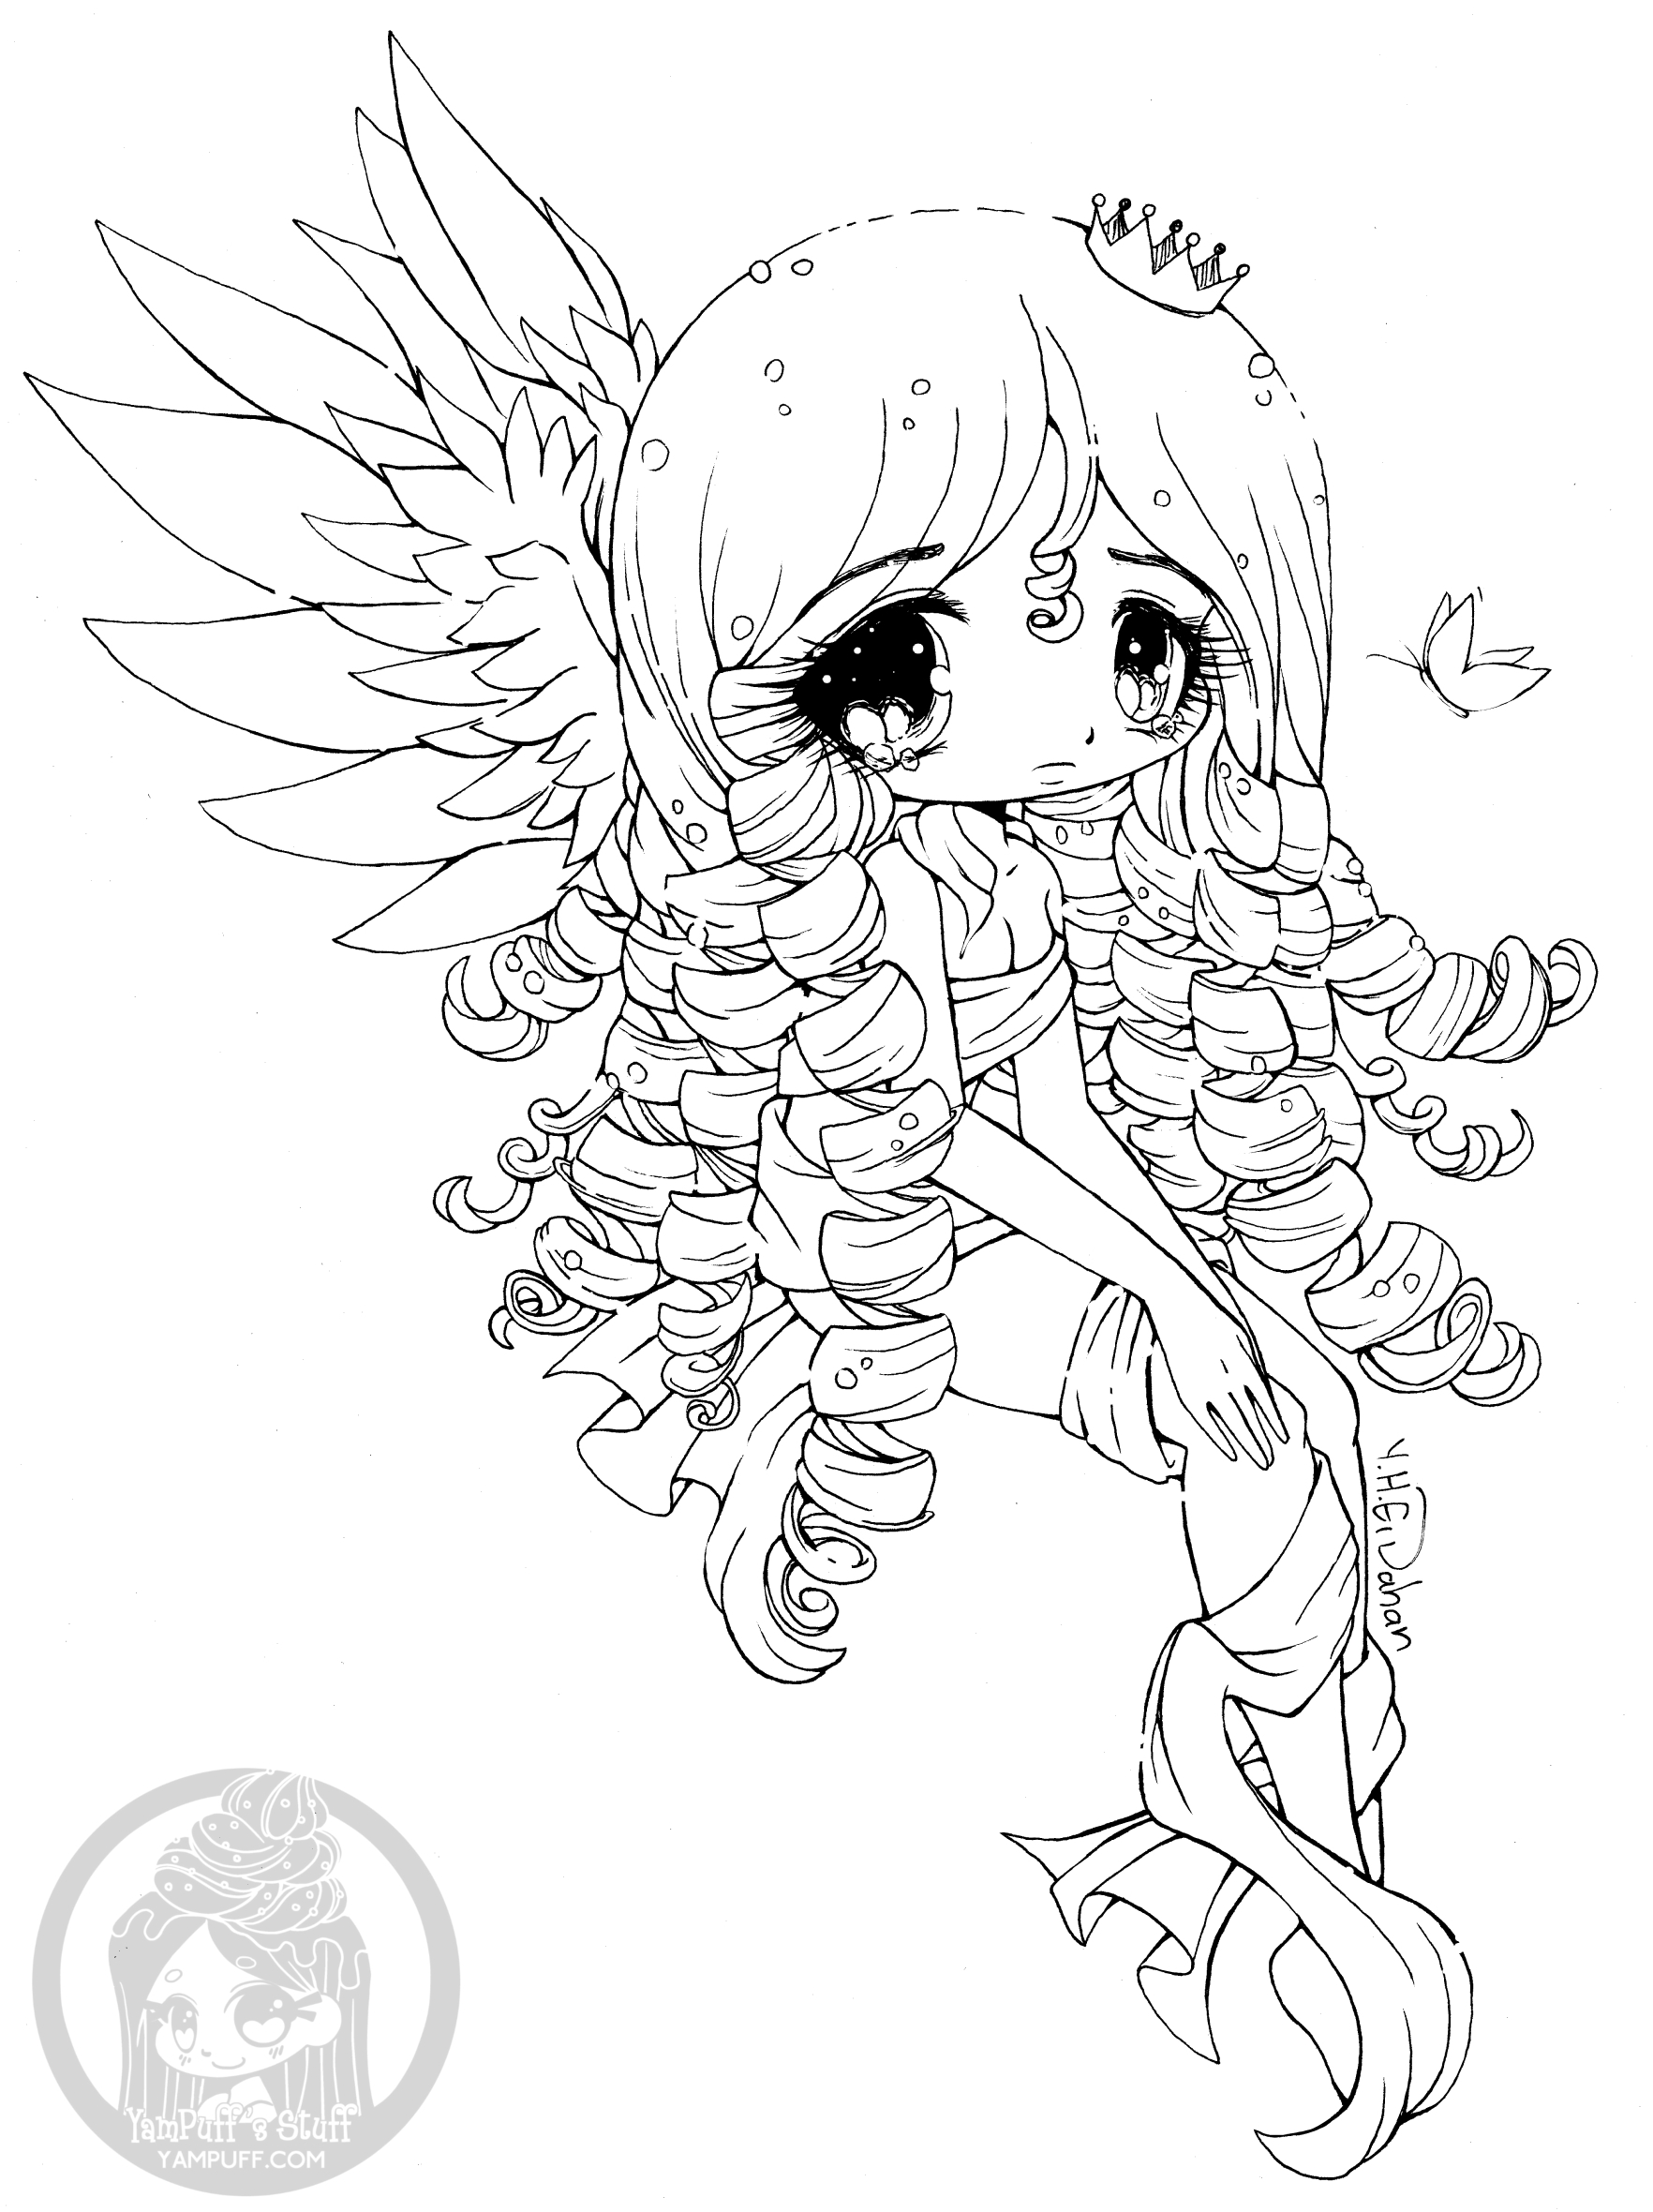 chibi coloring pages   Chibis - Free Chibi Coloring Pages • YamPuff's Stuff